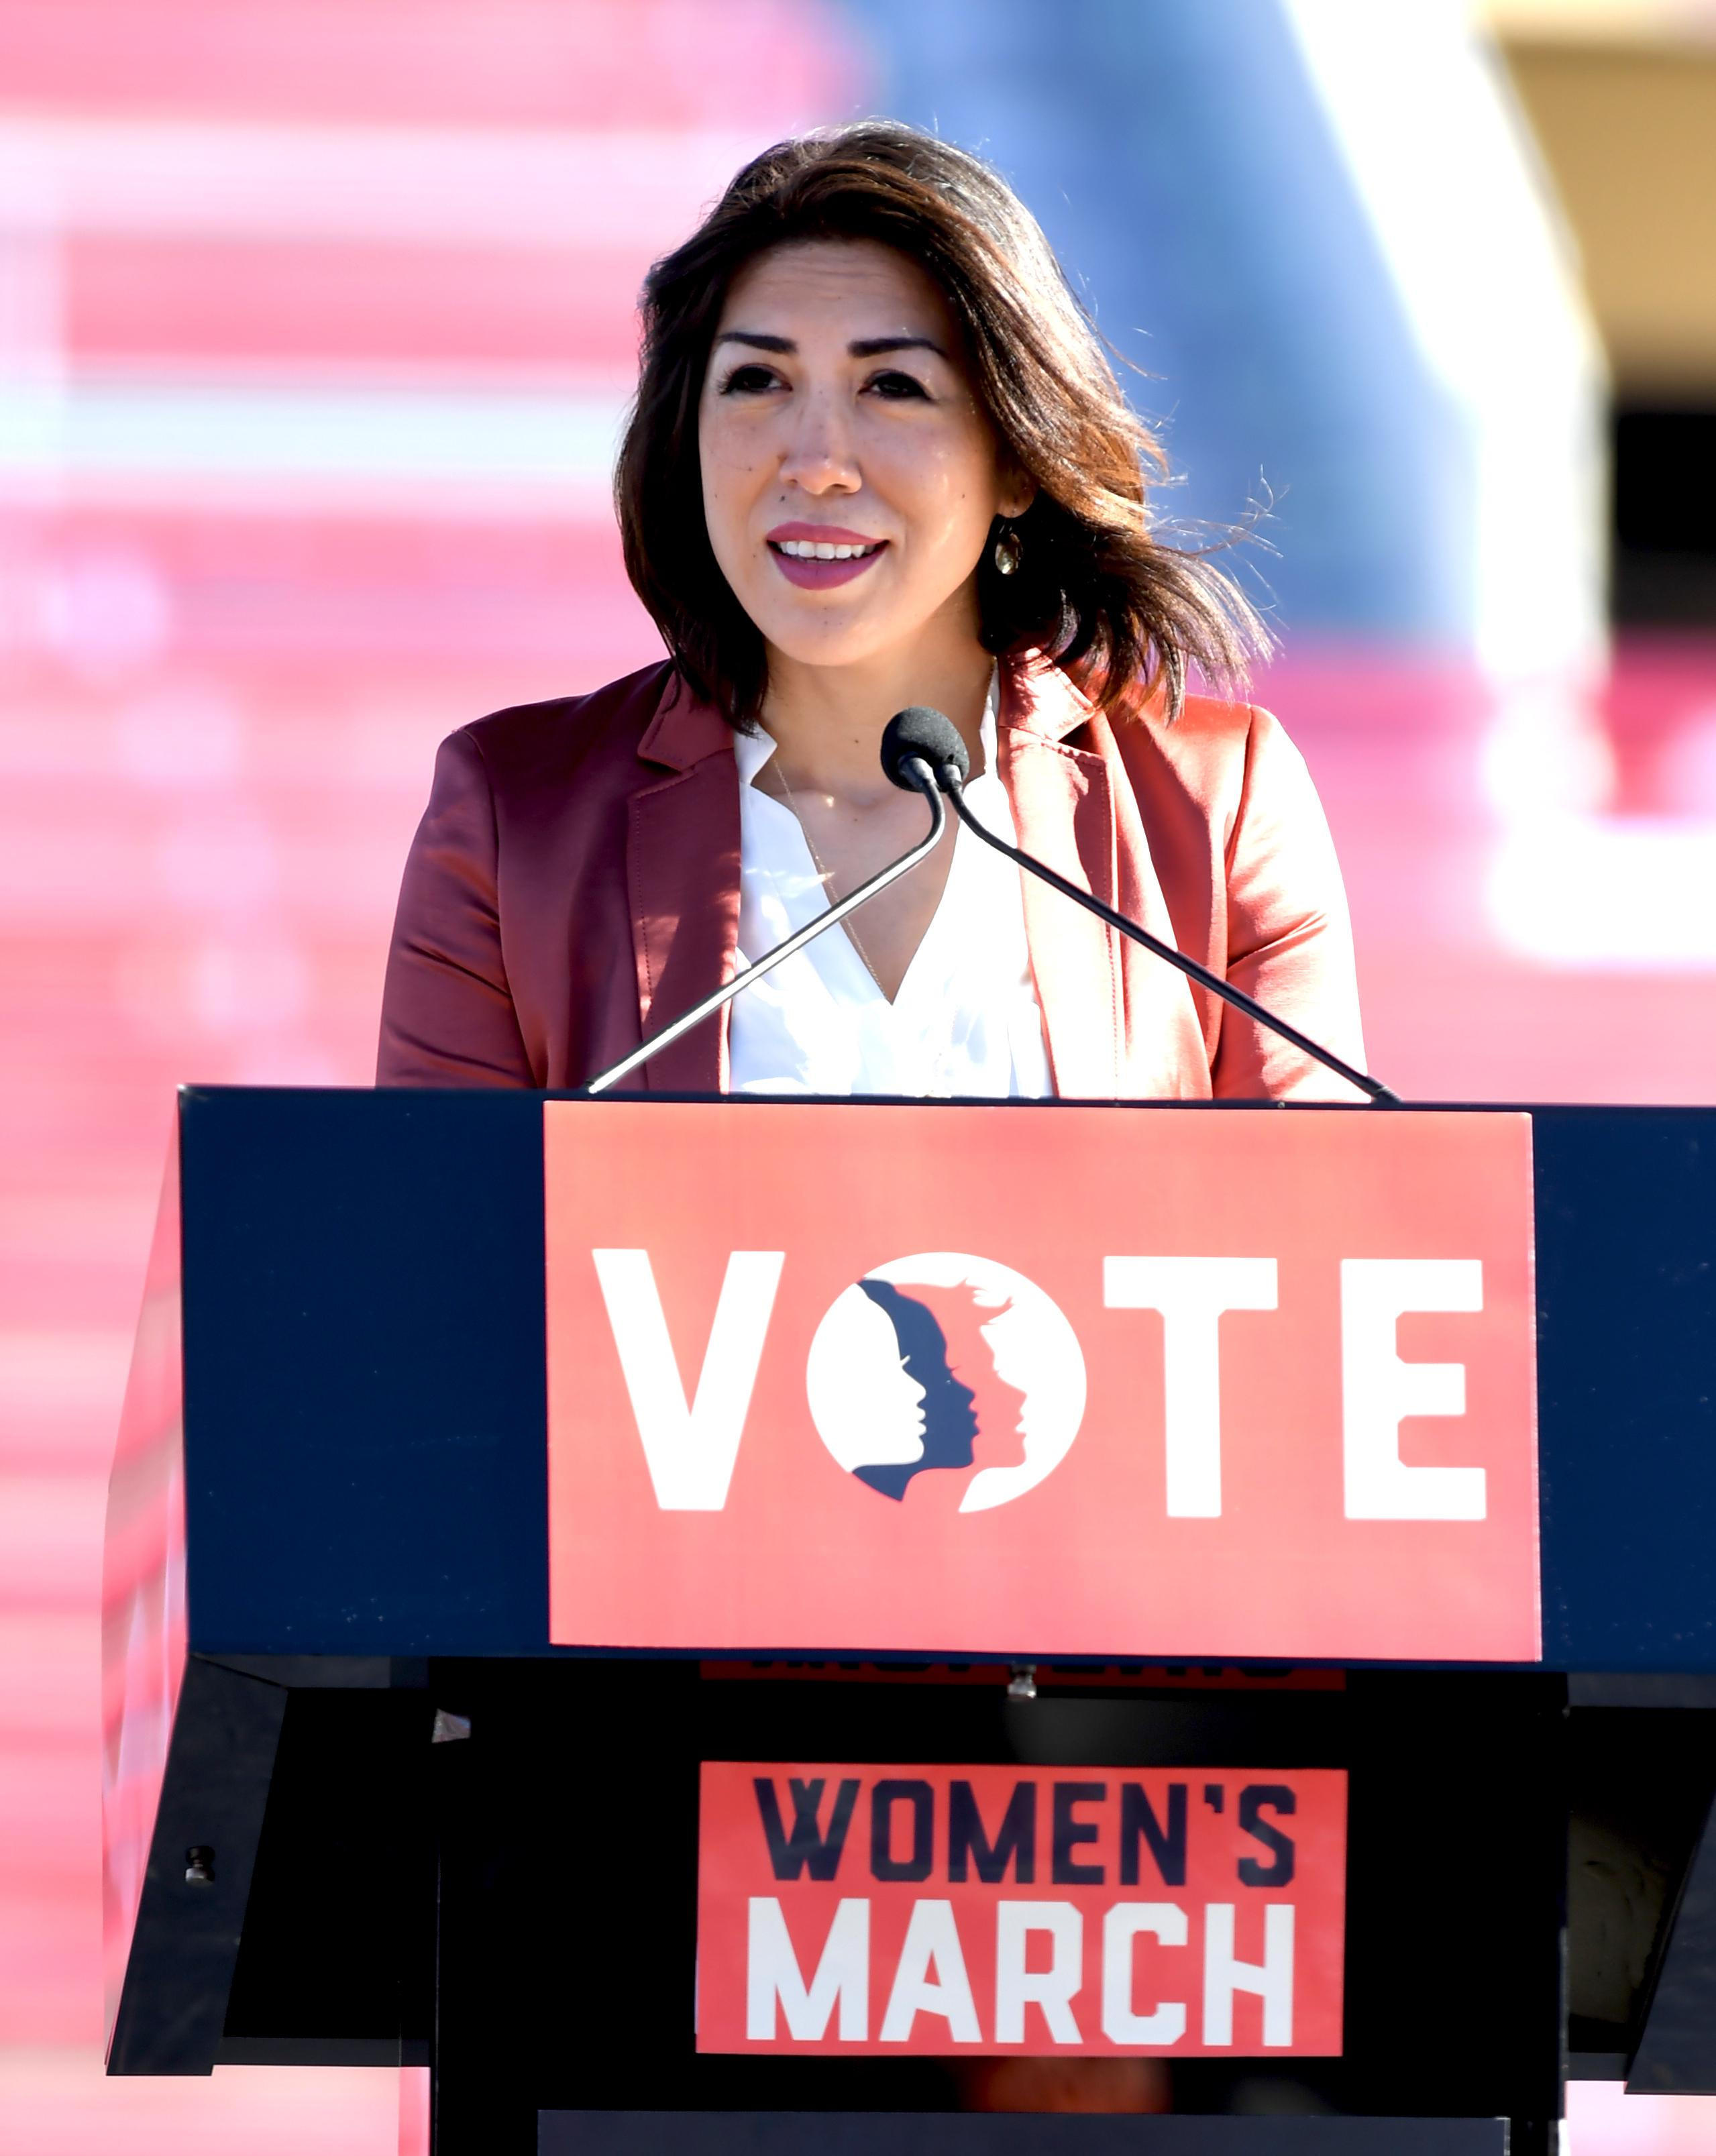 Idaho State Representative Paulette Jordan (D-ID) speaking at the Women's March Power to the Polls Rally at Sam Boyd Stadium in Las Vegas. Sunday, January 21, 2017. CREDIT: Glenn Pinkerton/Las Vegas News Bureau